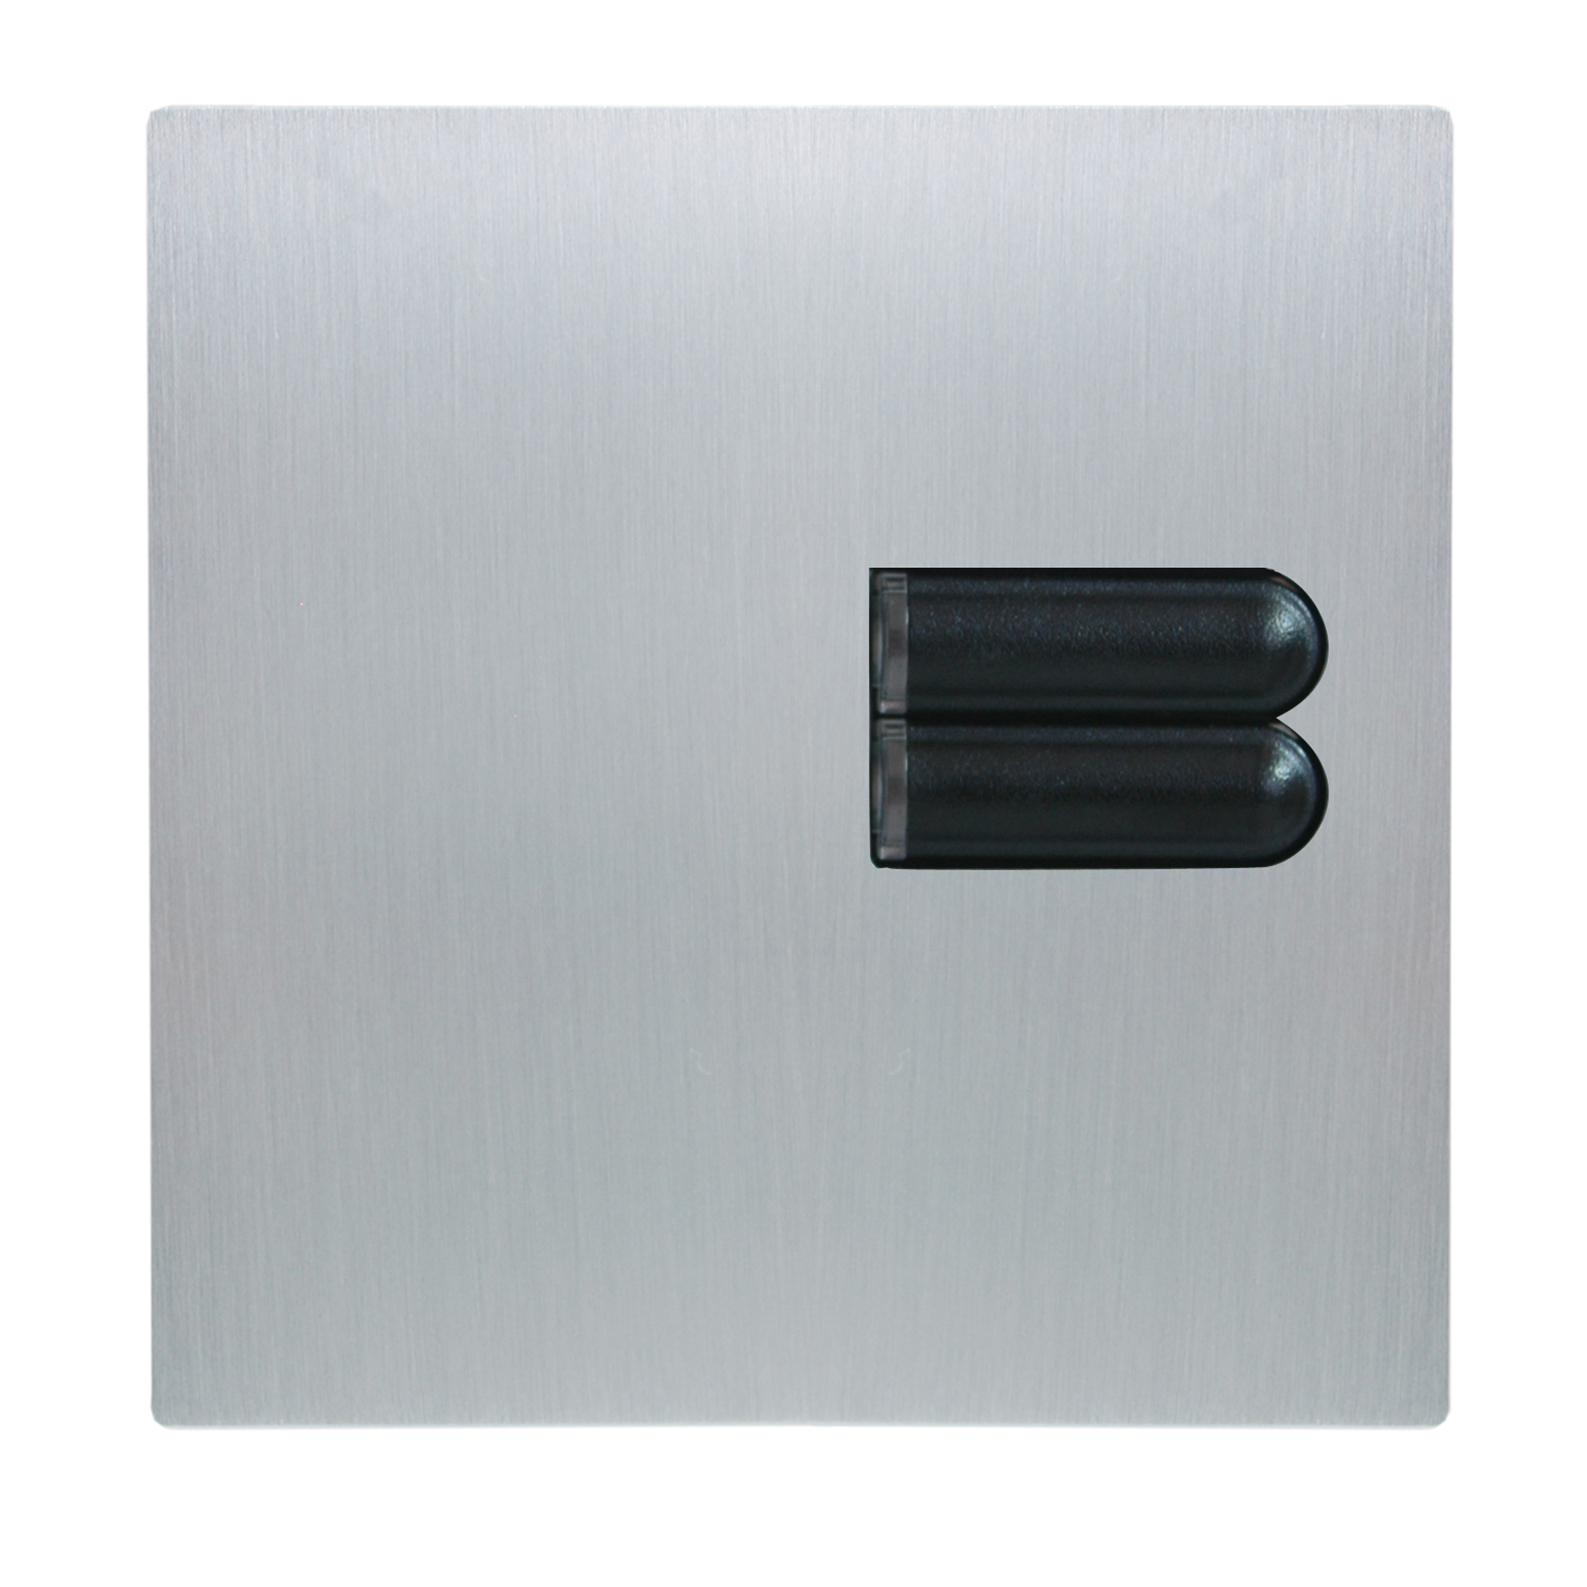 lutron european wall switch cover plate egrx2b satin. Black Bedroom Furniture Sets. Home Design Ideas